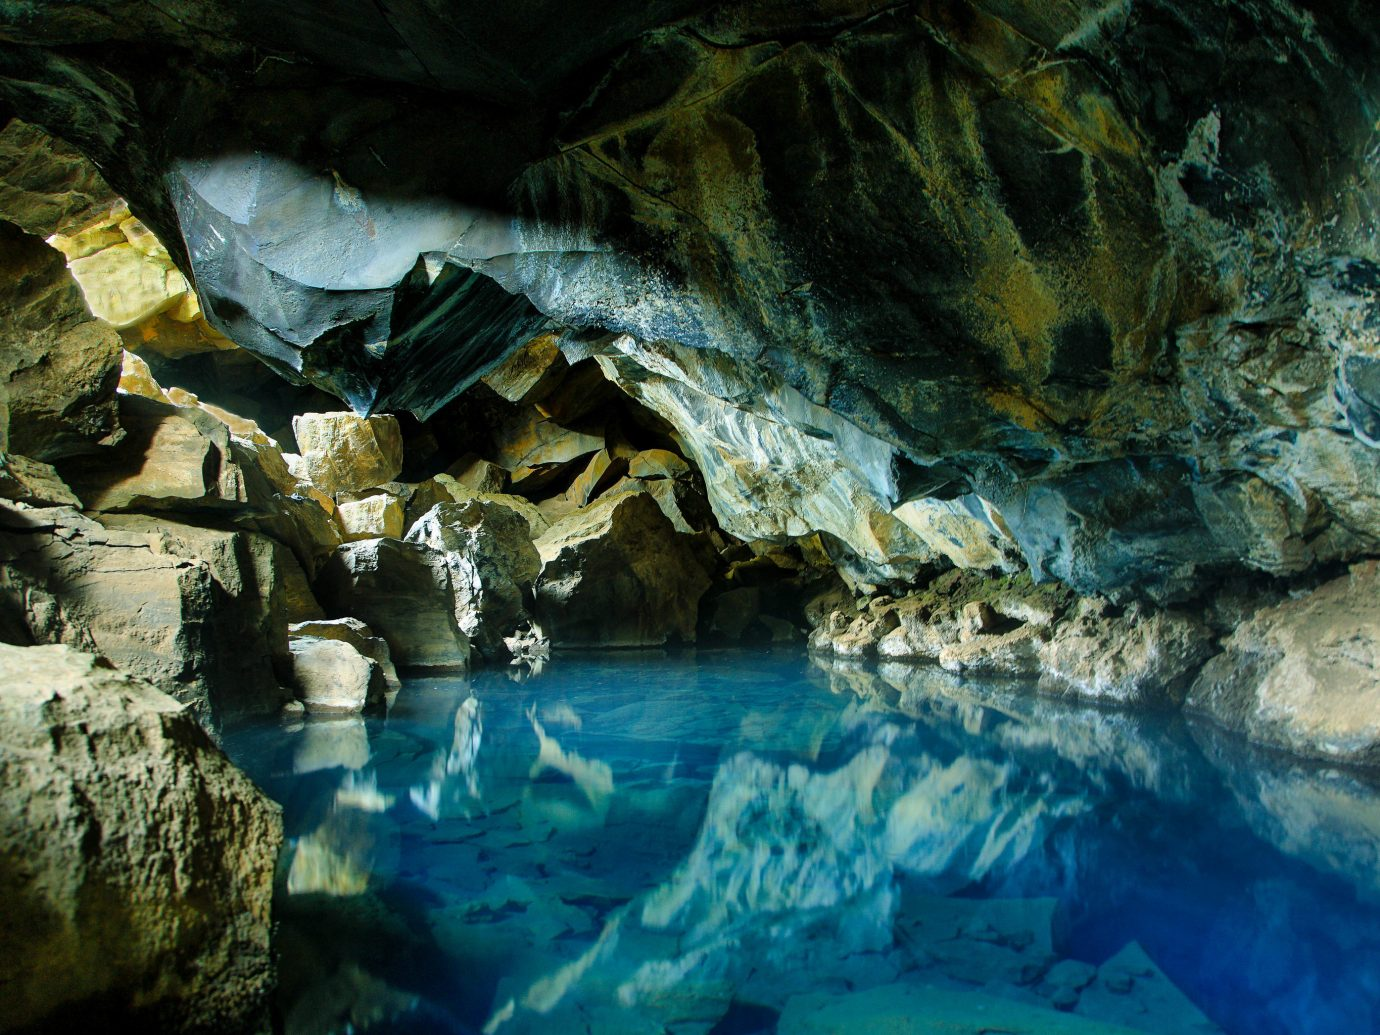 Offbeat rock water Nature outdoor cave formation underground lake watercourse coastal and oceanic landforms caving reflection fluvial landforms of streams geology sea cave Waterfall stream stone